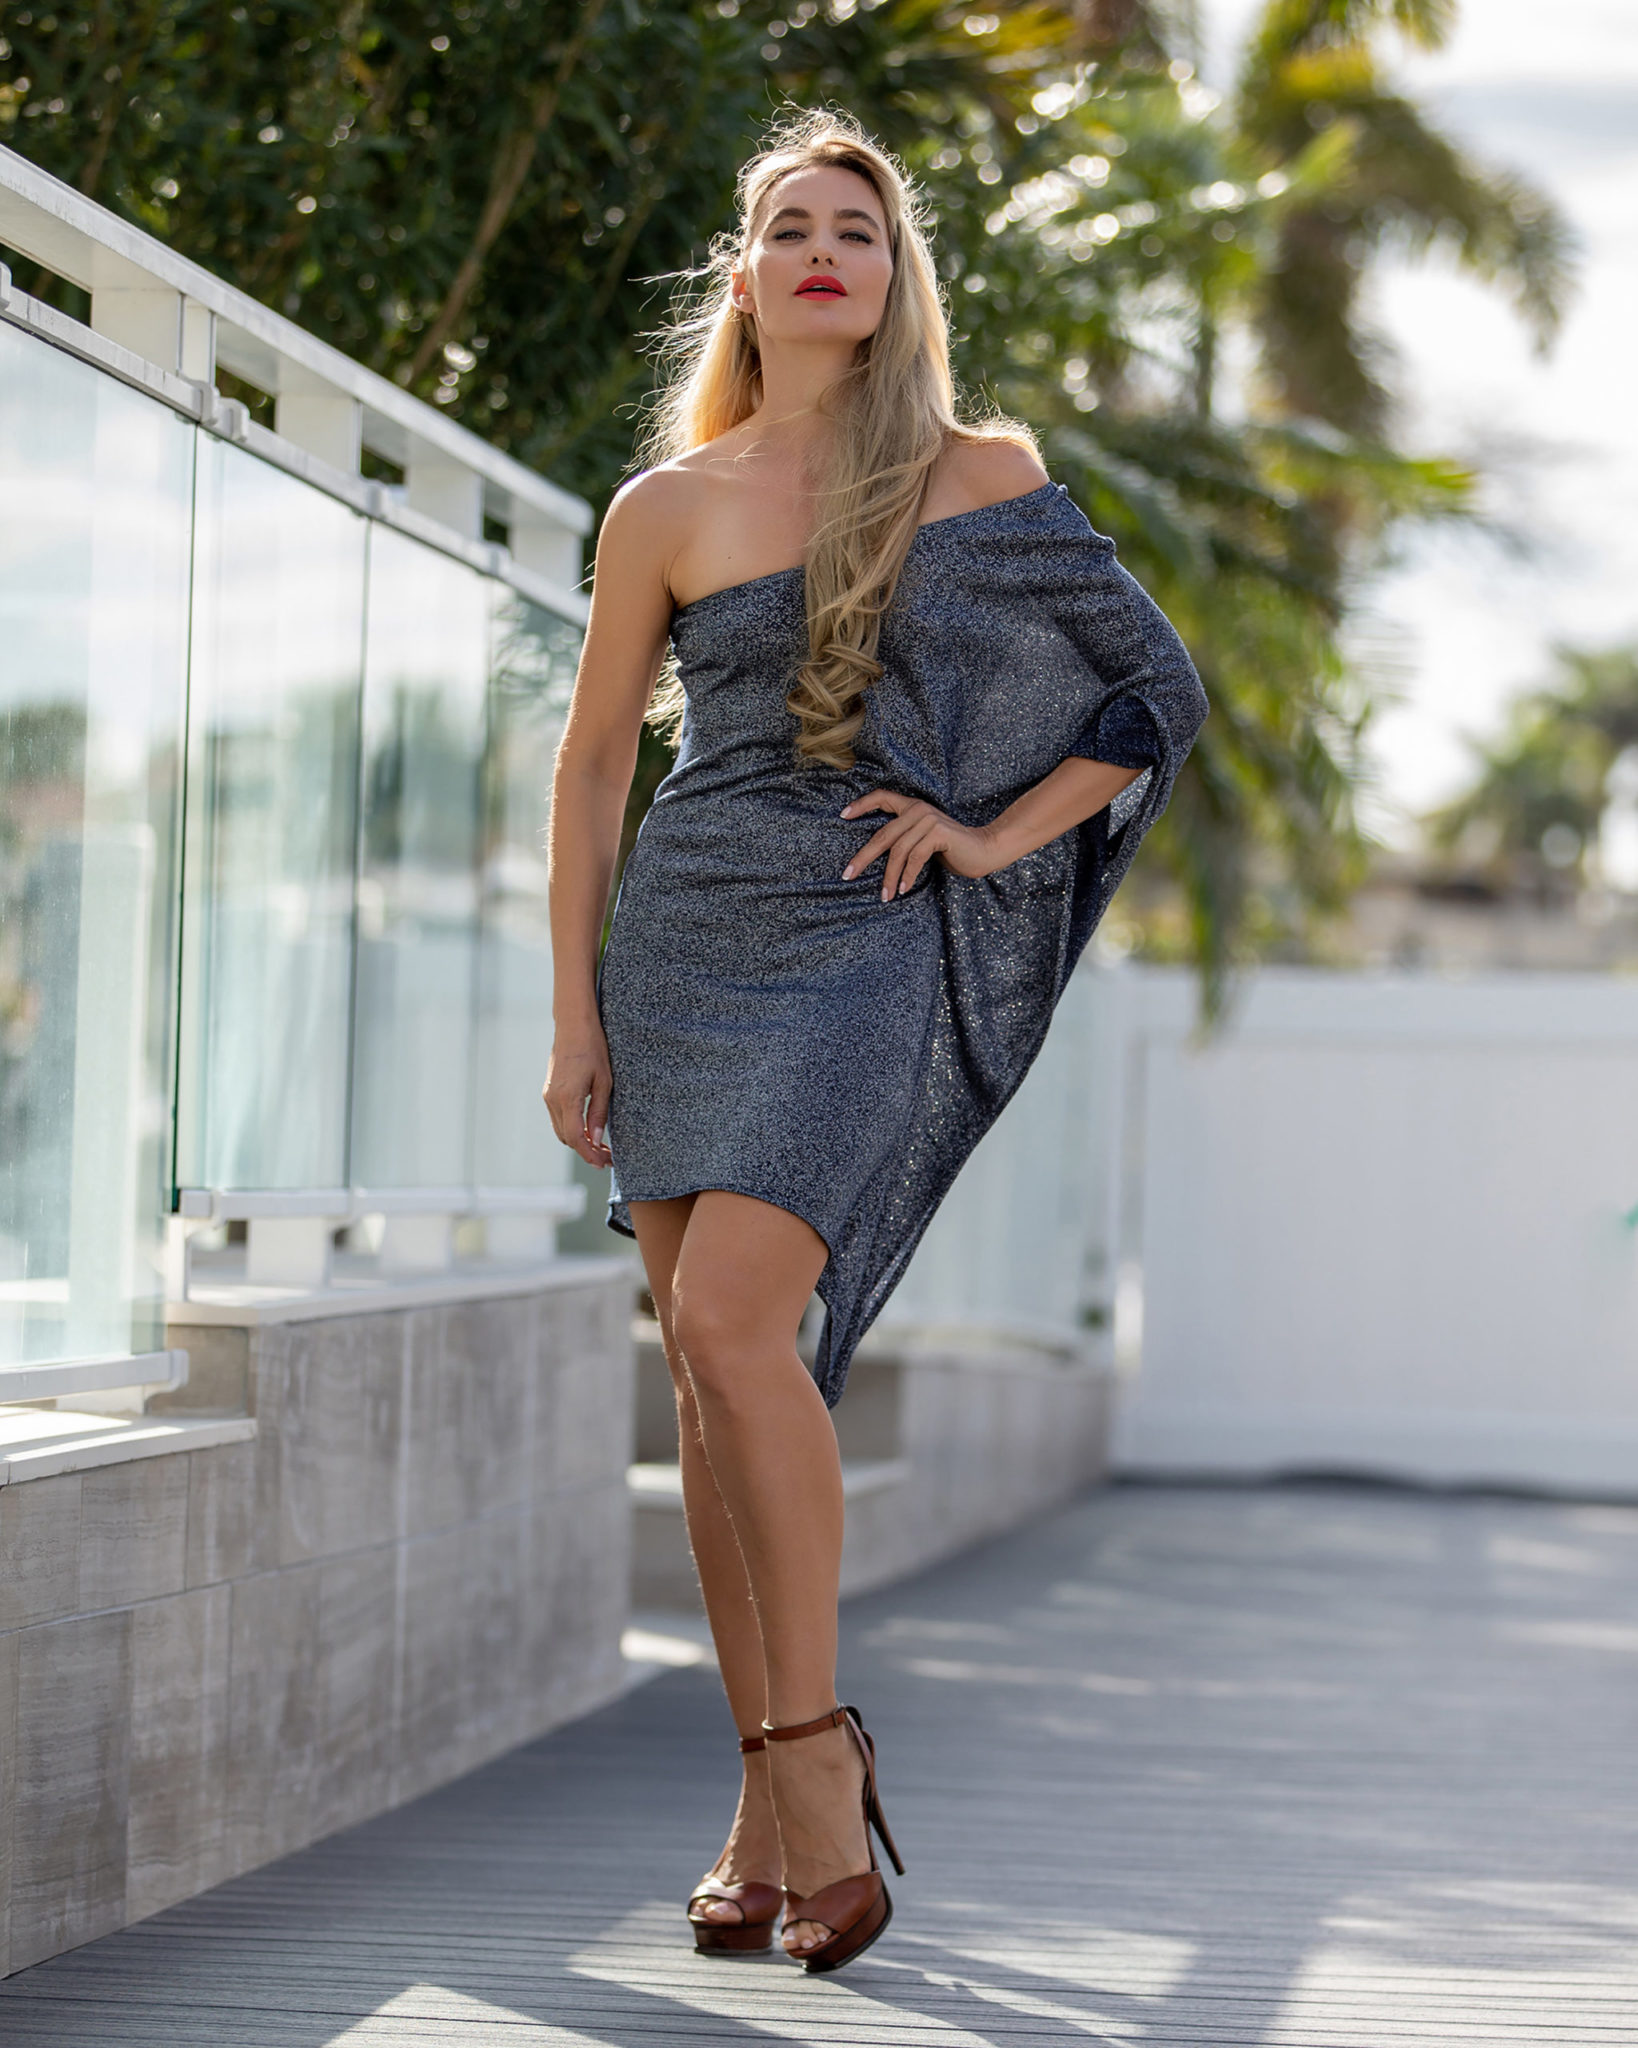 Silver and spice: This sexy, asymmetric, one-shoulder short dress—designed with stretch acrylic and semi-synthetic viscose material—incorporates illusion threads that add stylish detail to the look. (Model: Victoria Liub)